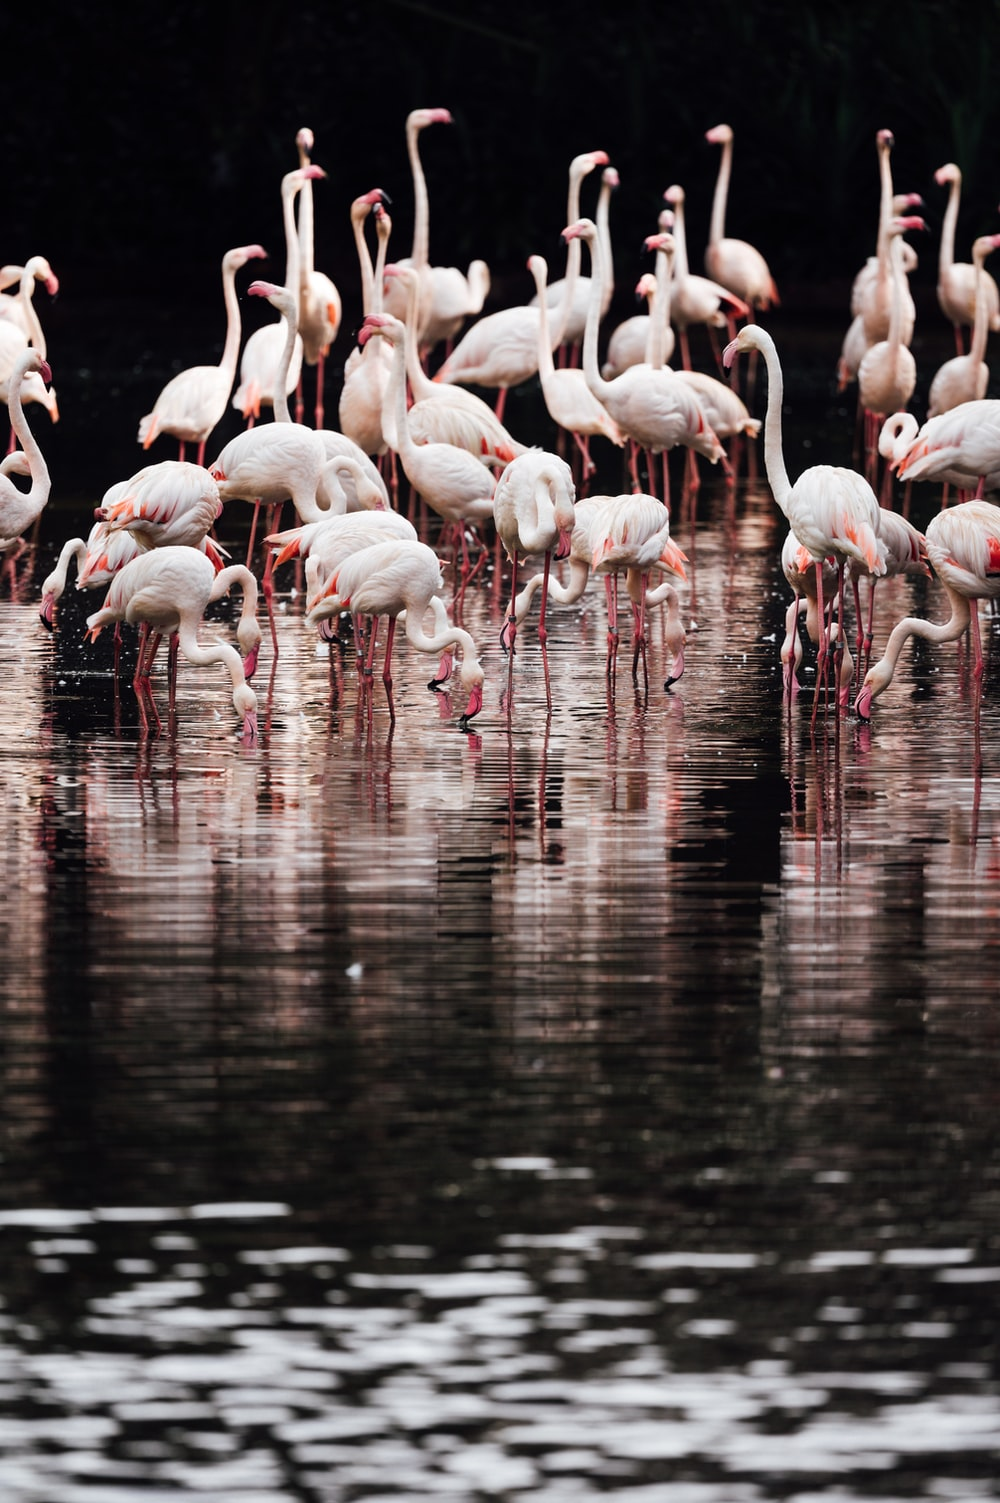 flock of flamingos on water during daytime